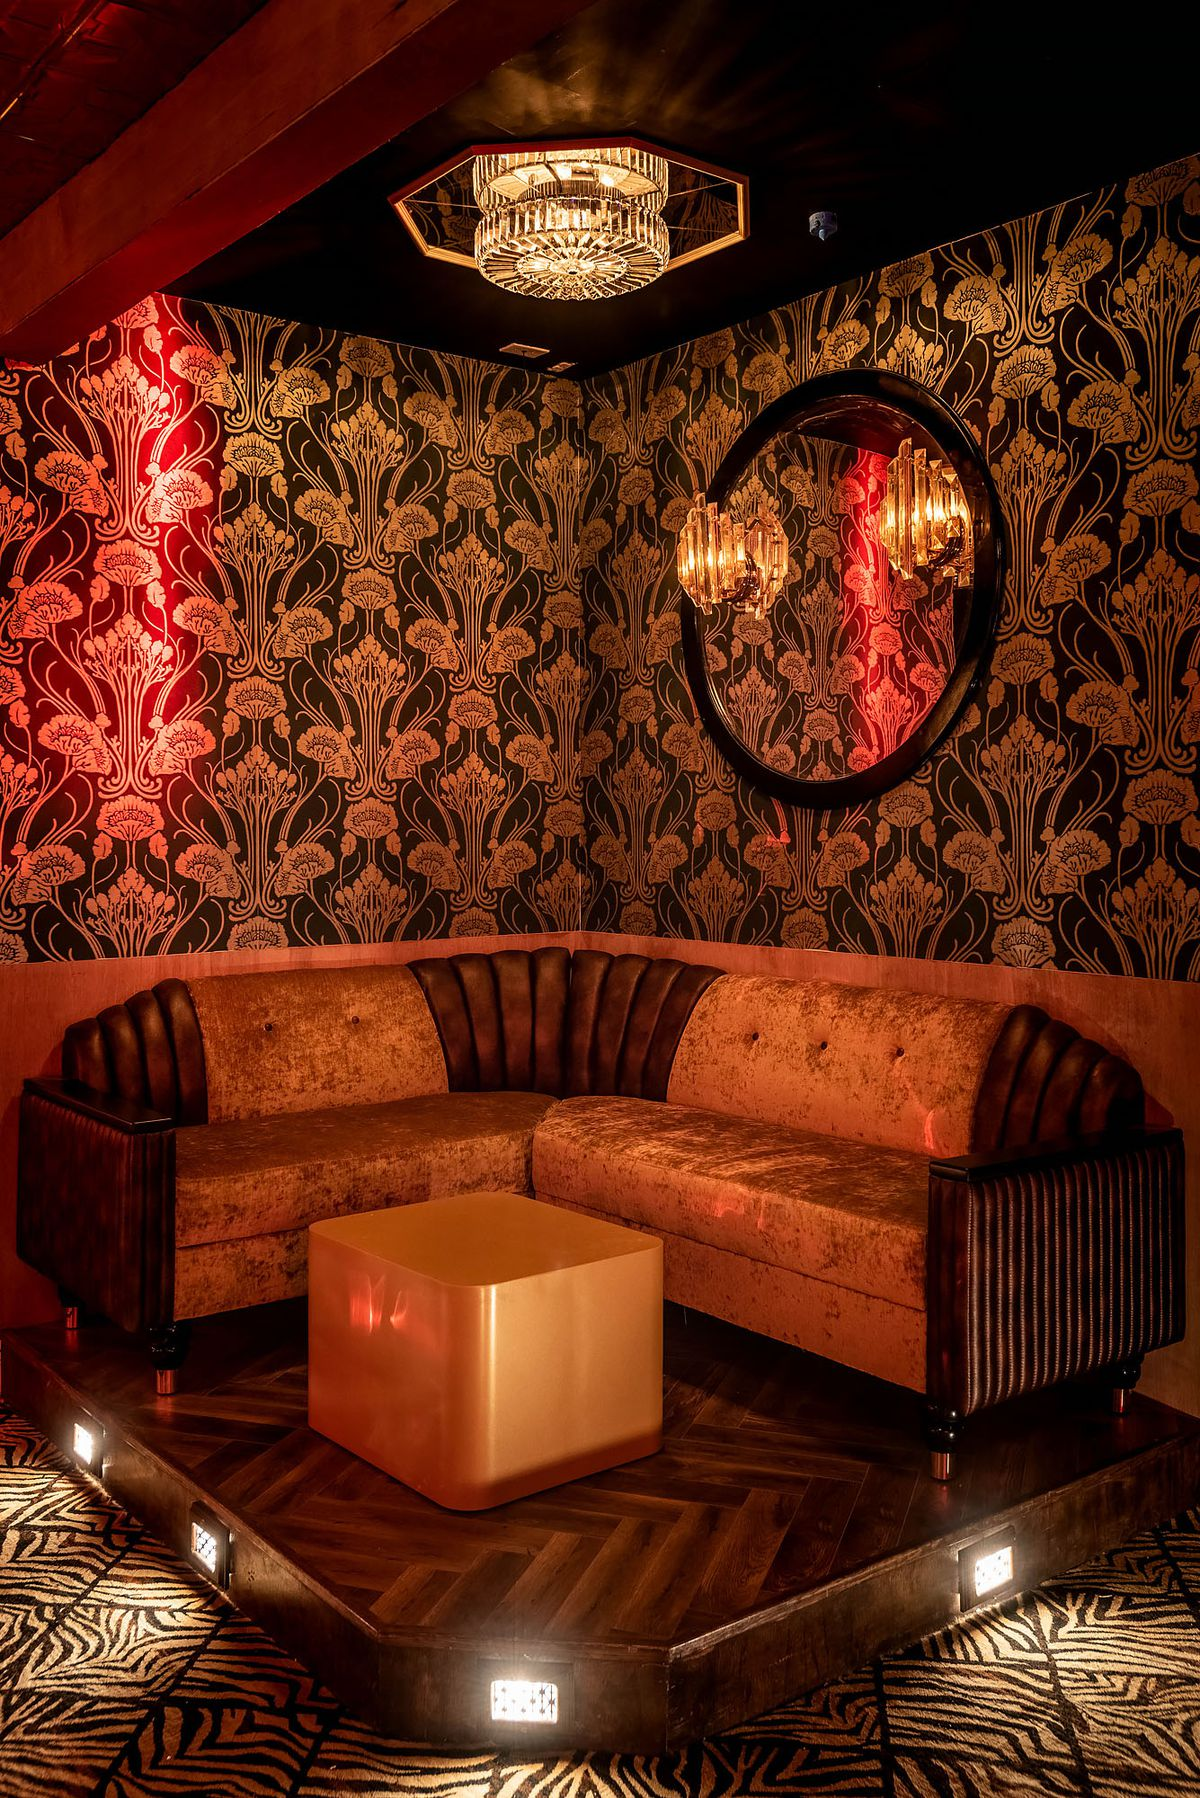 Lounge seating with textured wallpaper and ottoman.